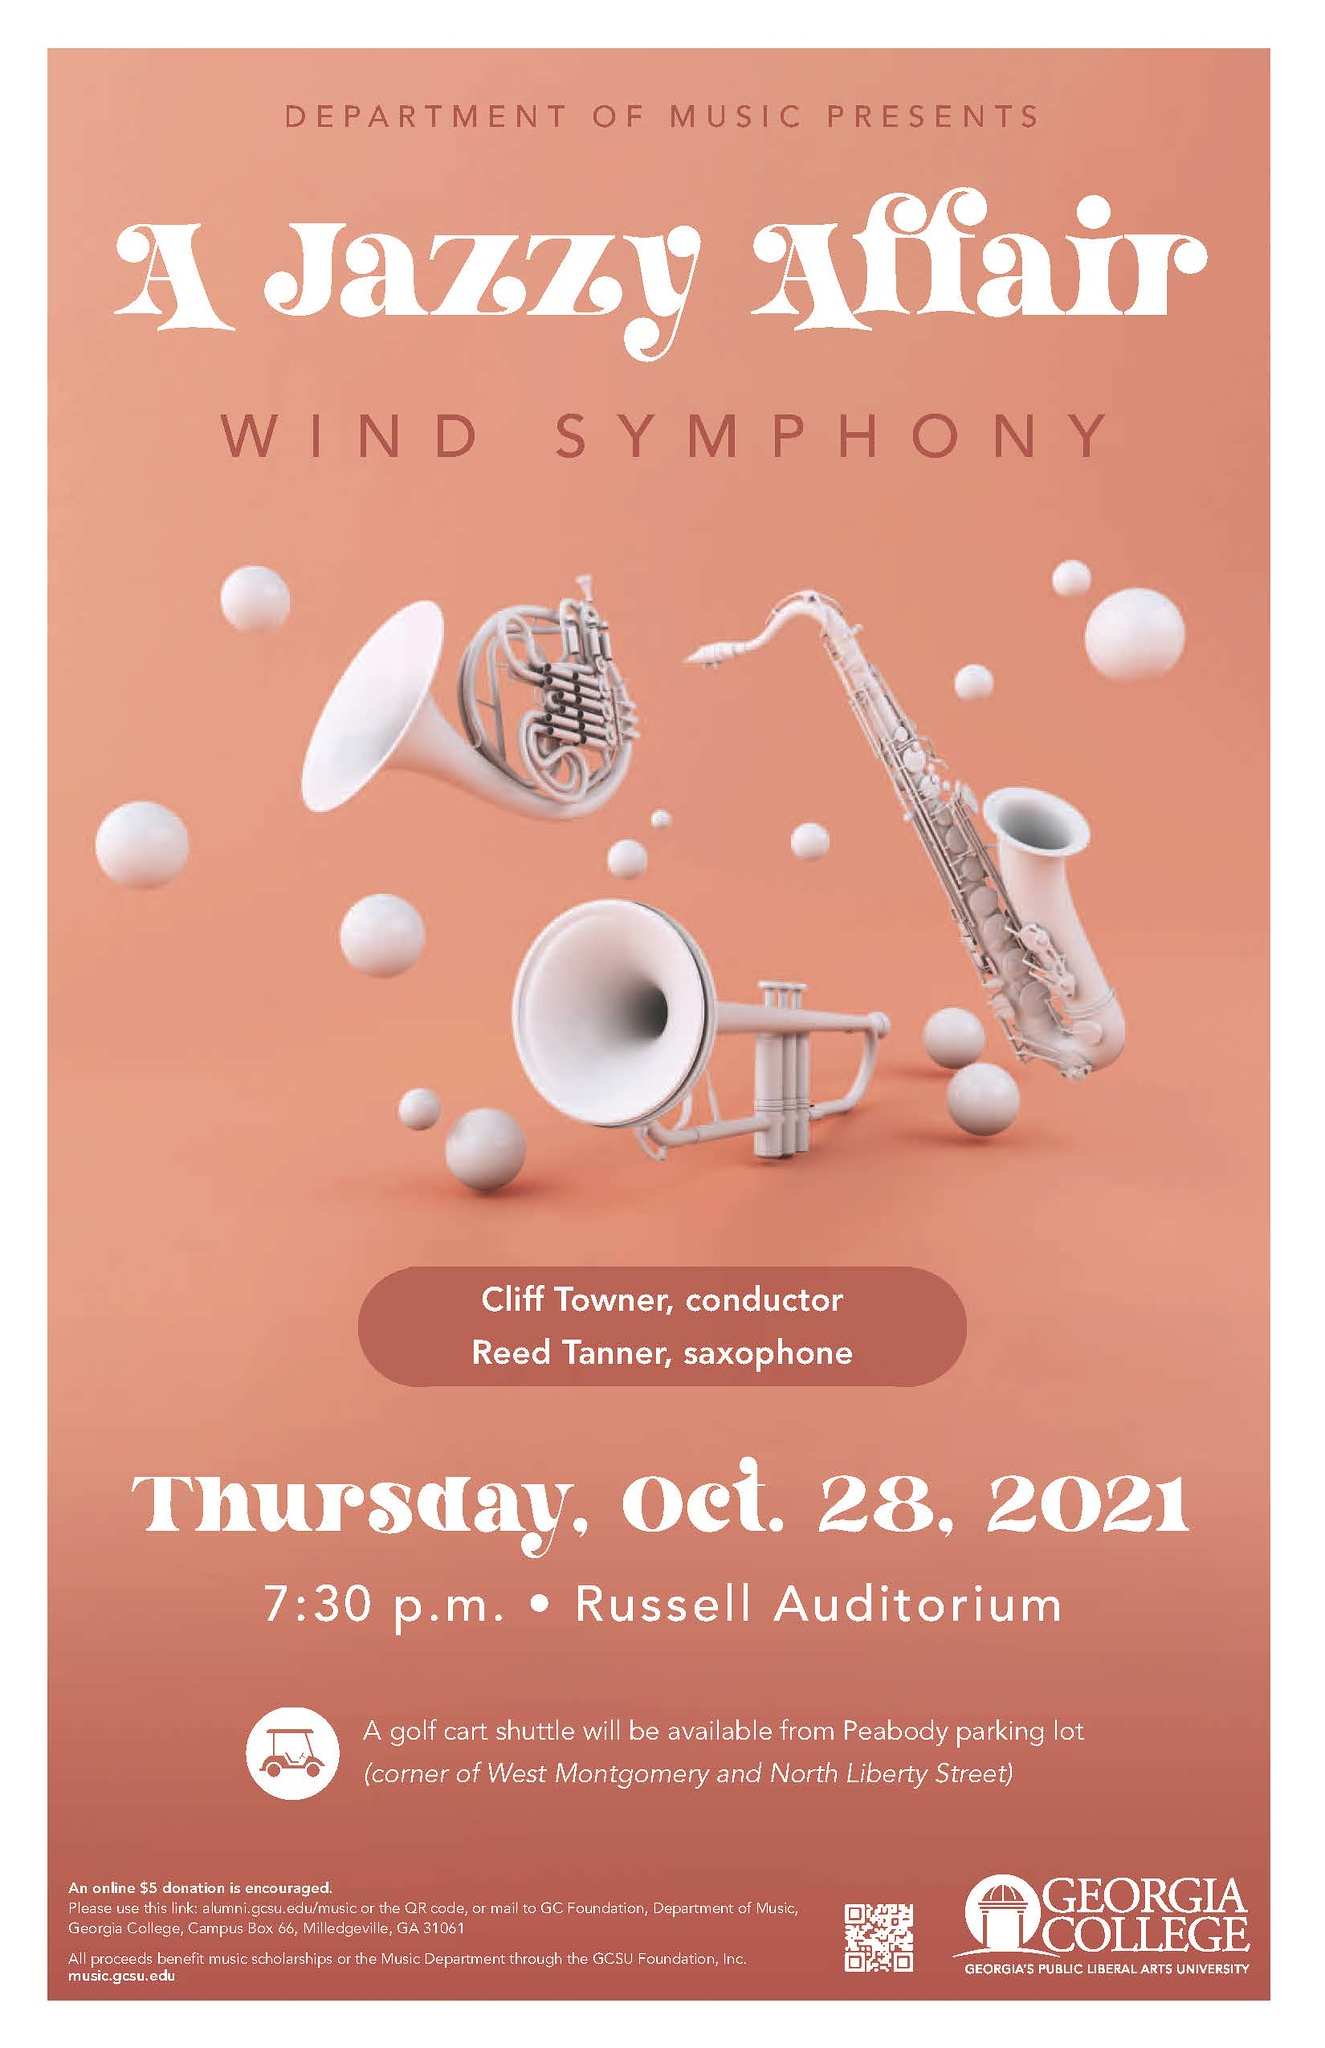 Please join us on Oct. 28 for this concert.